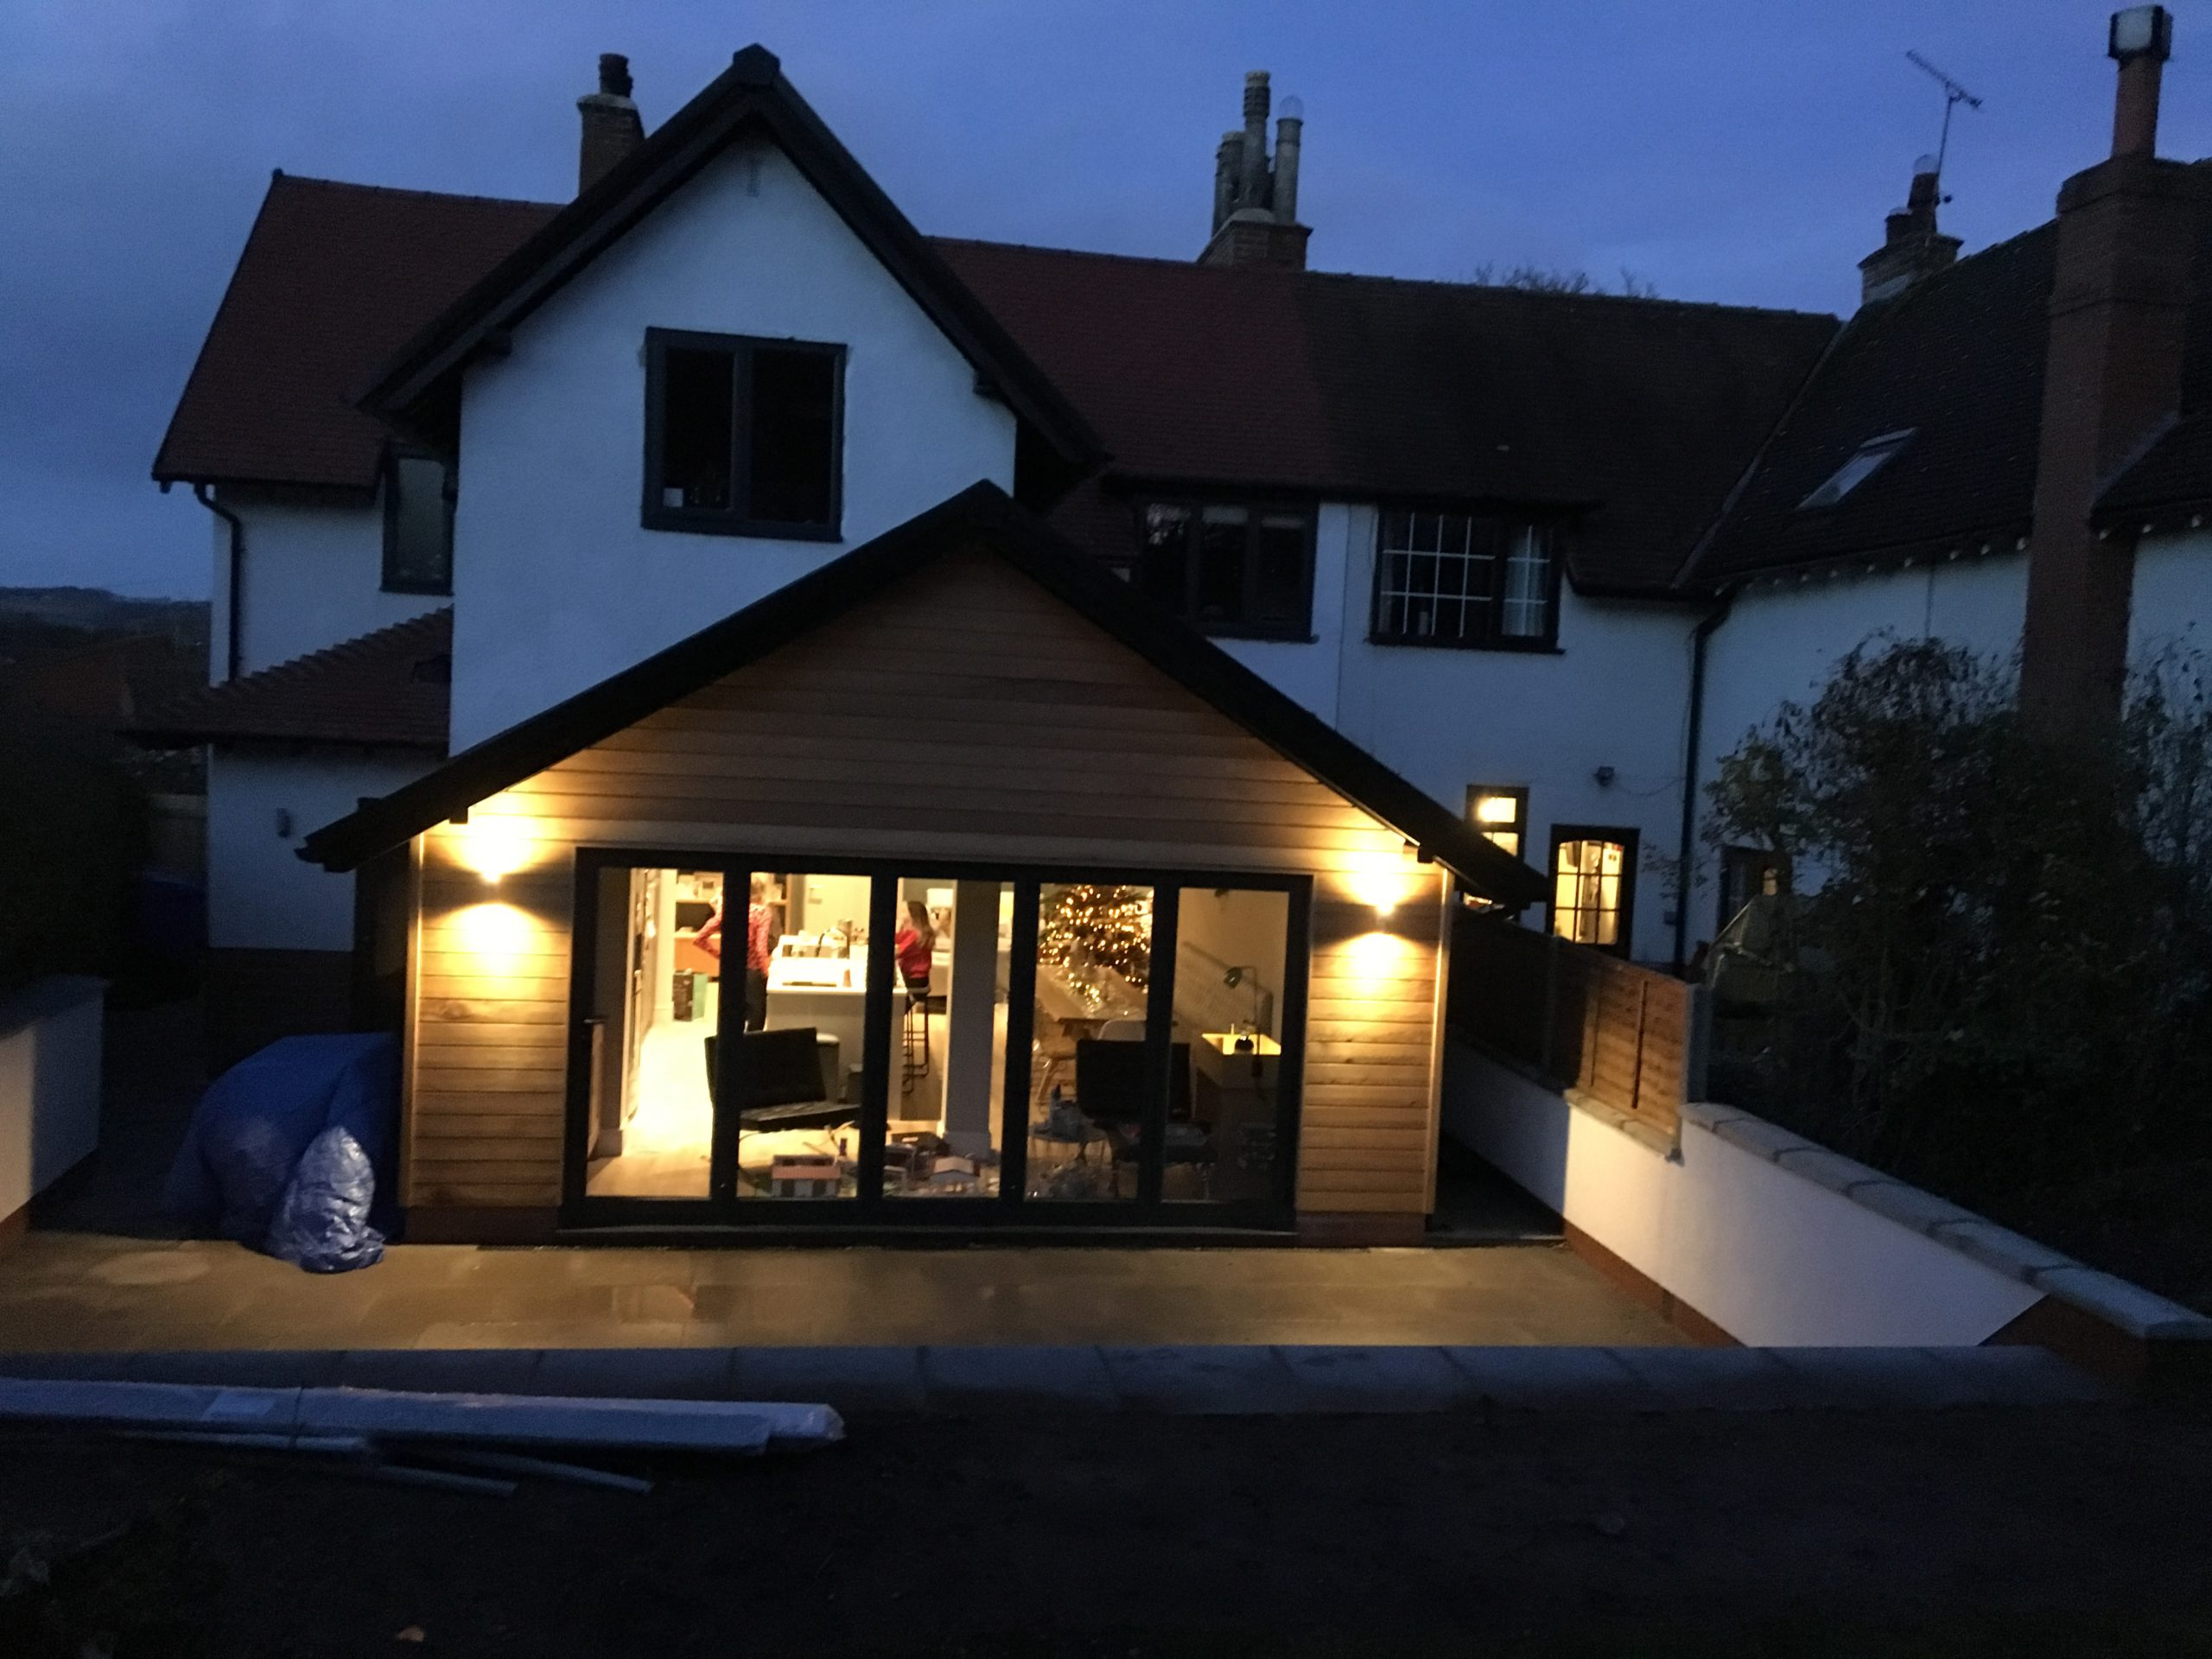 Outside view of rear house extension with lights